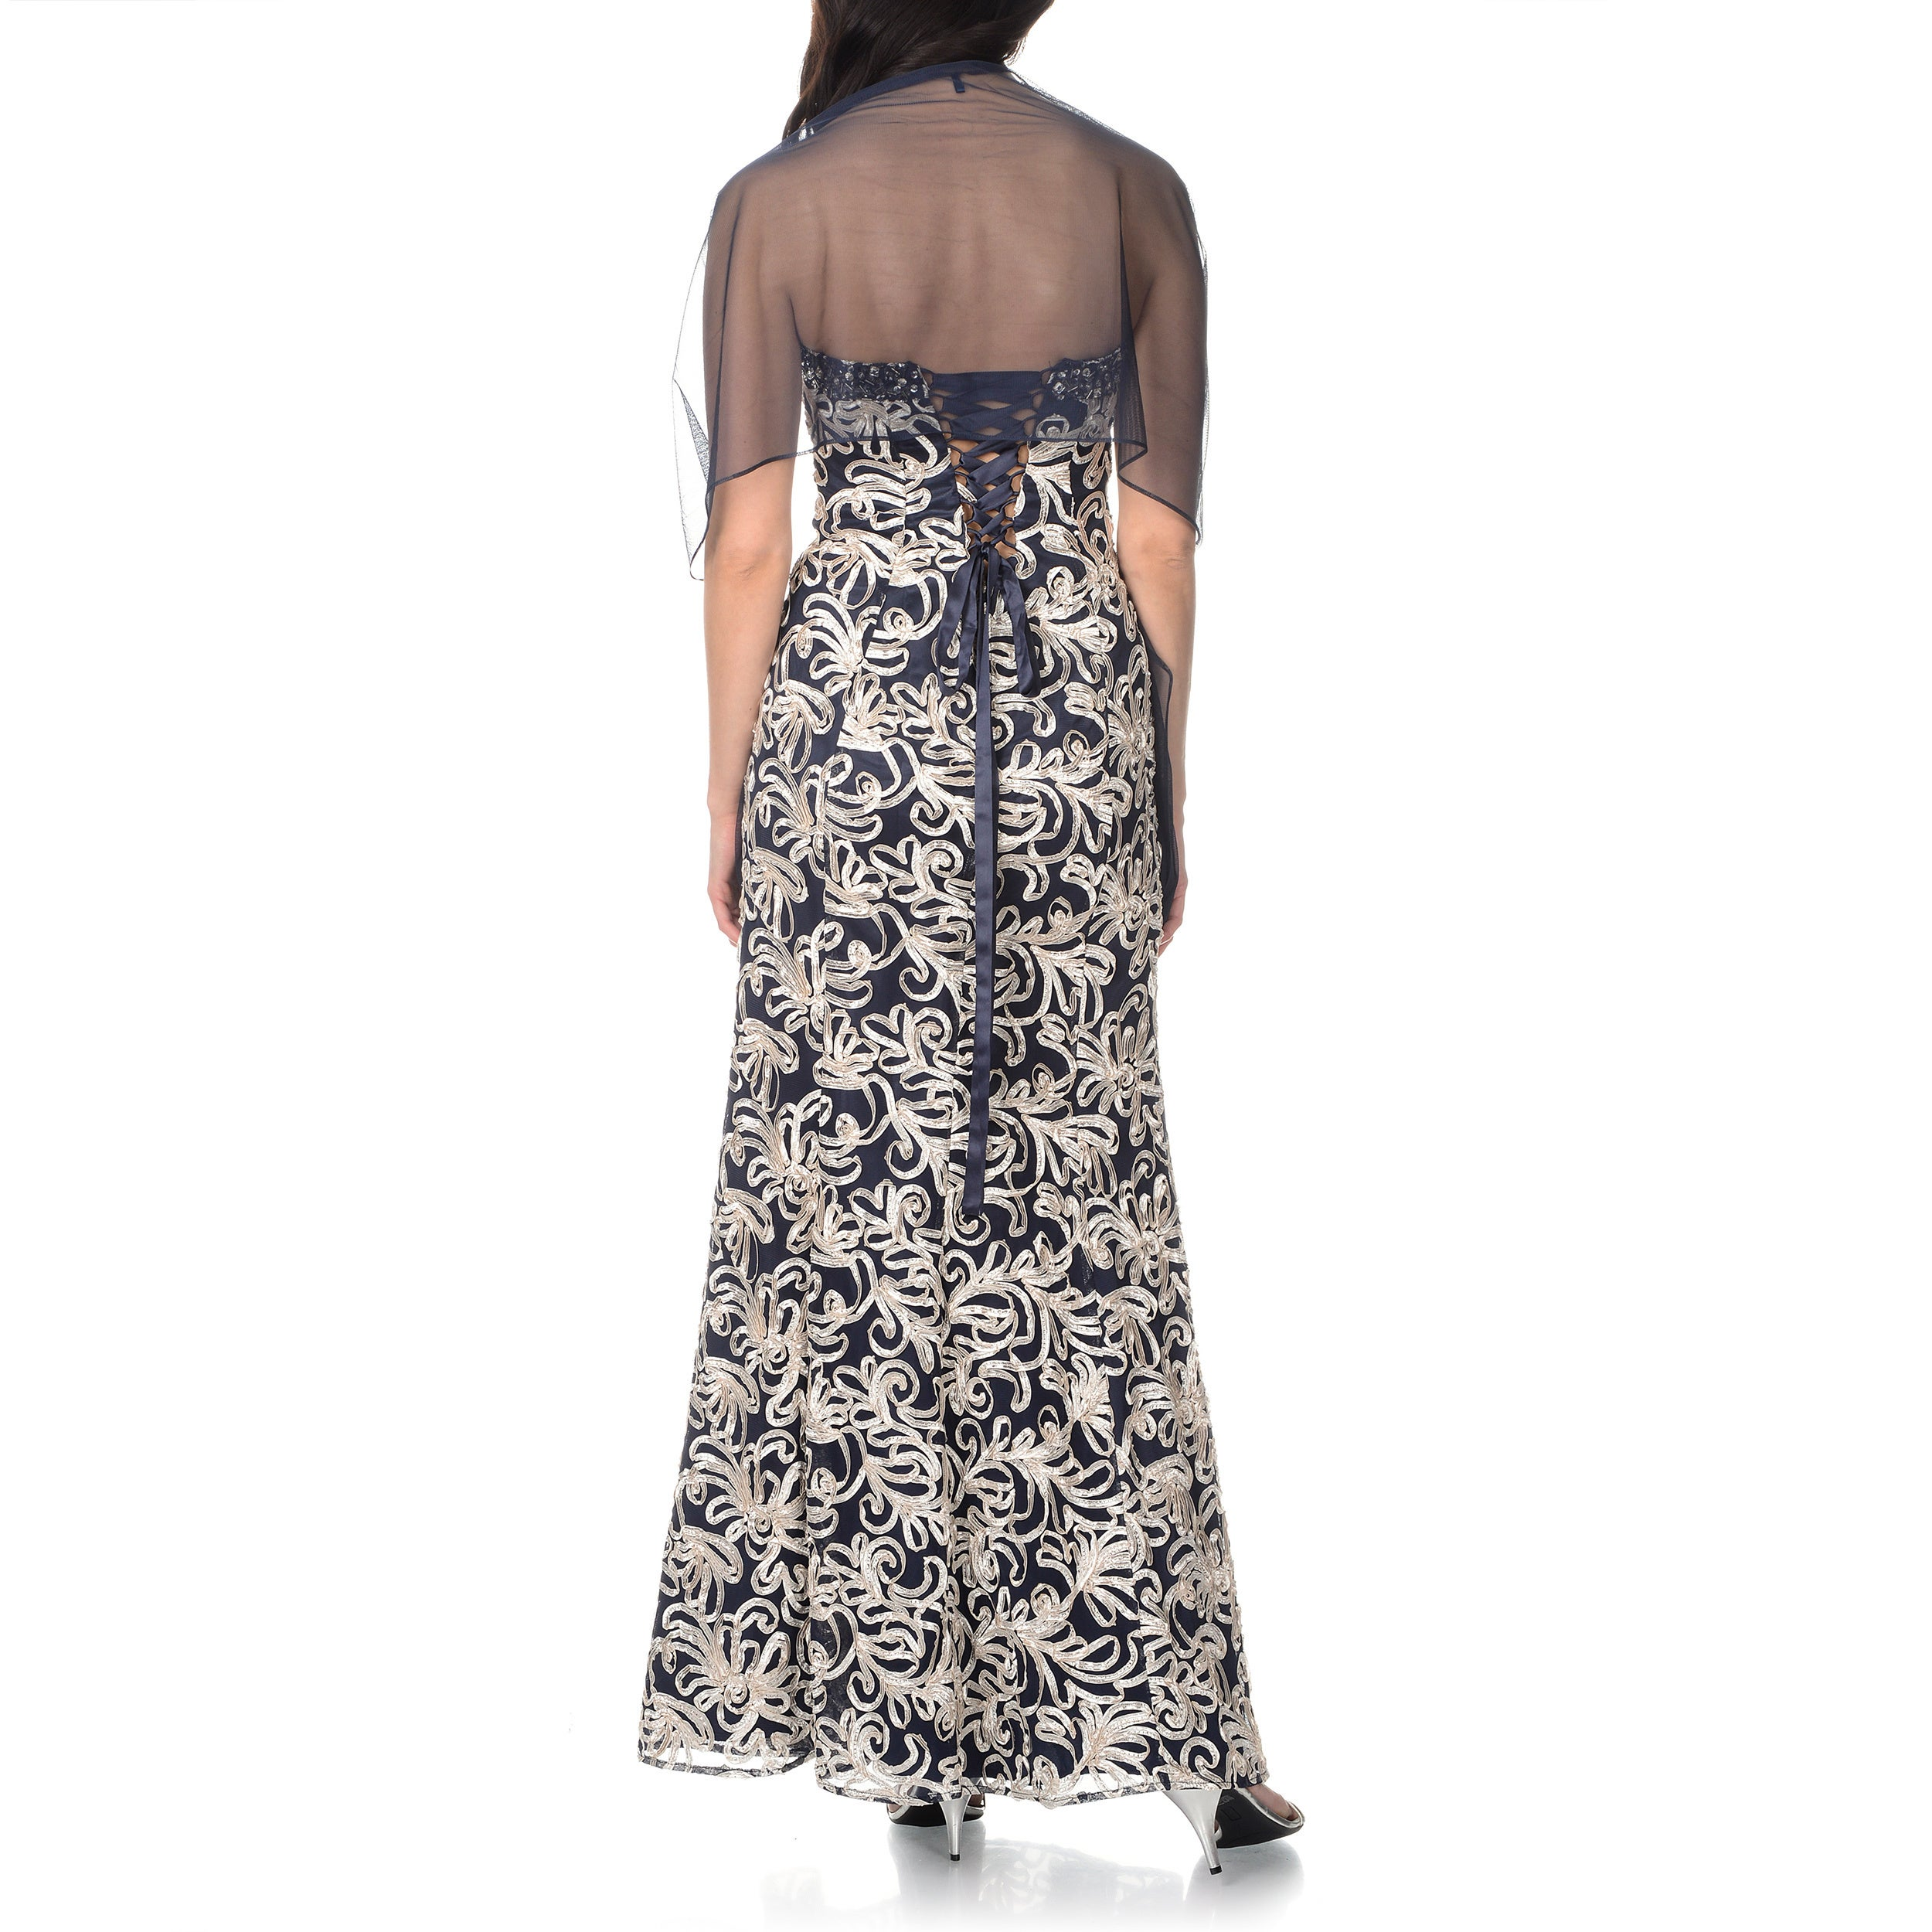 9eec6e3e8b6 Shop Ignite Evenings by Carol Lin Women s Gown with Scarf - Free Shipping  Today - Overstock - 10017111